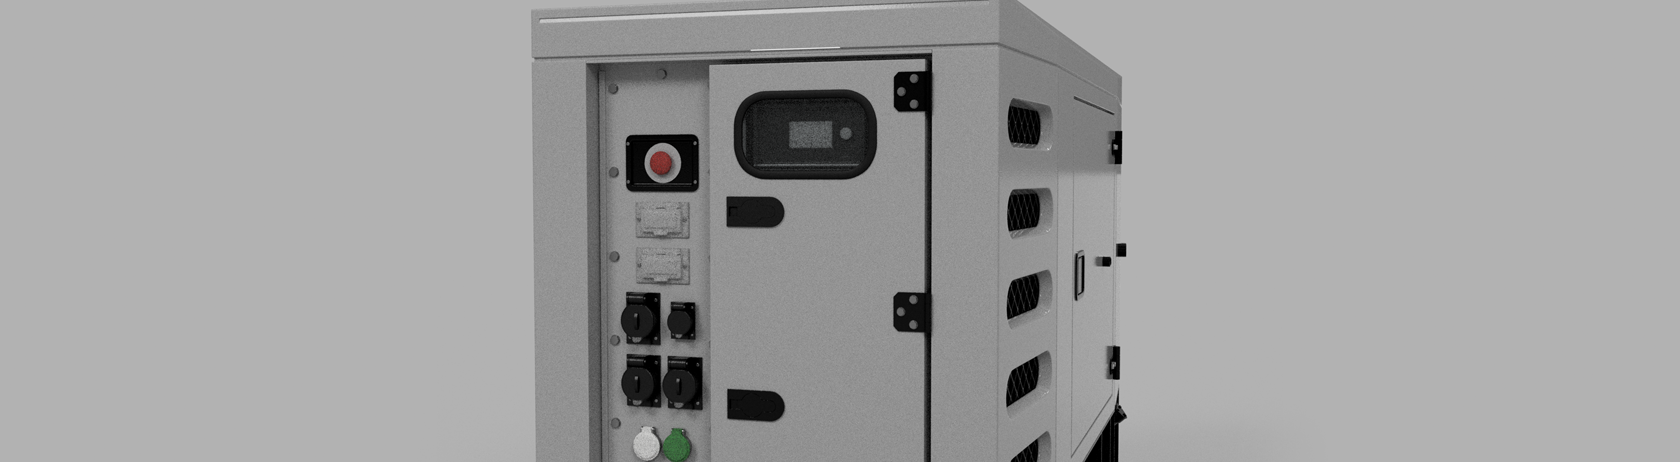 Generator side panel and control panel